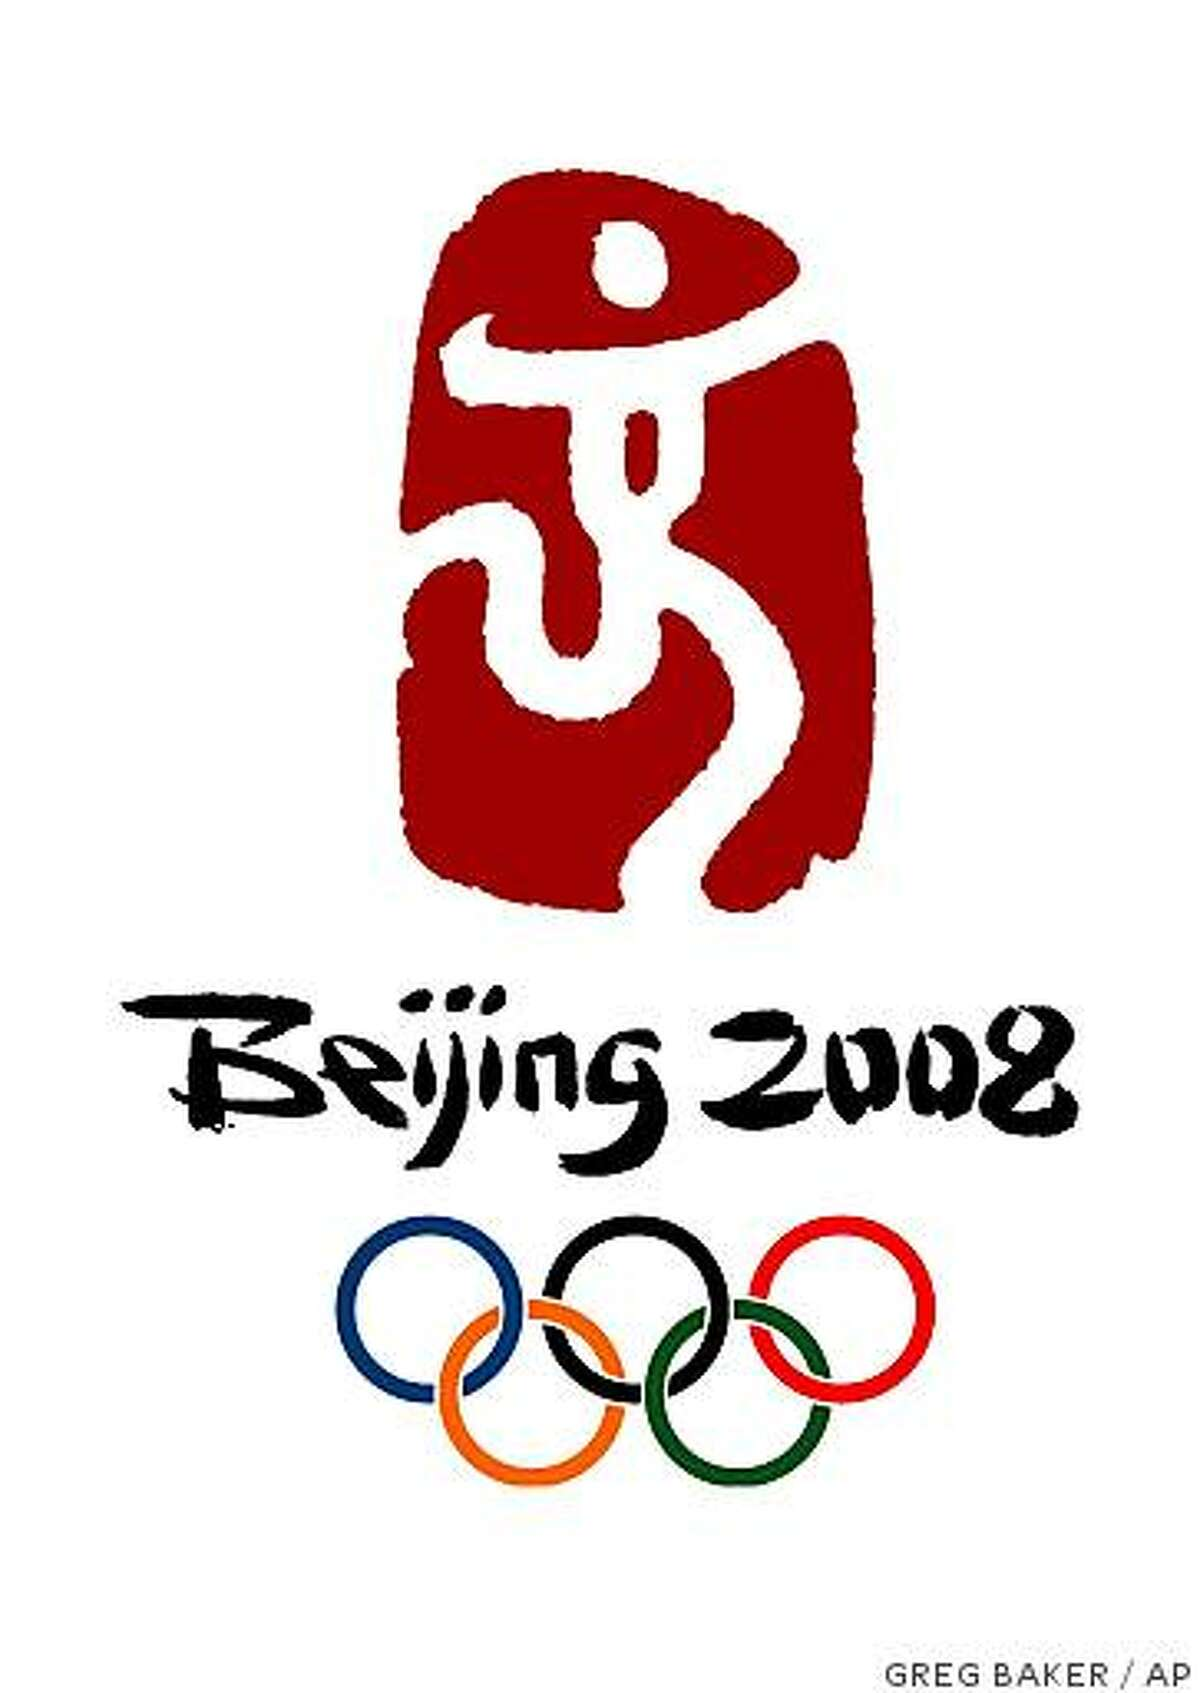 The official logo for the 2008 Beijing Olympic Games, was unveiled at the Temple of Heaven in Beijing Sunday Aug. 3, 2003.